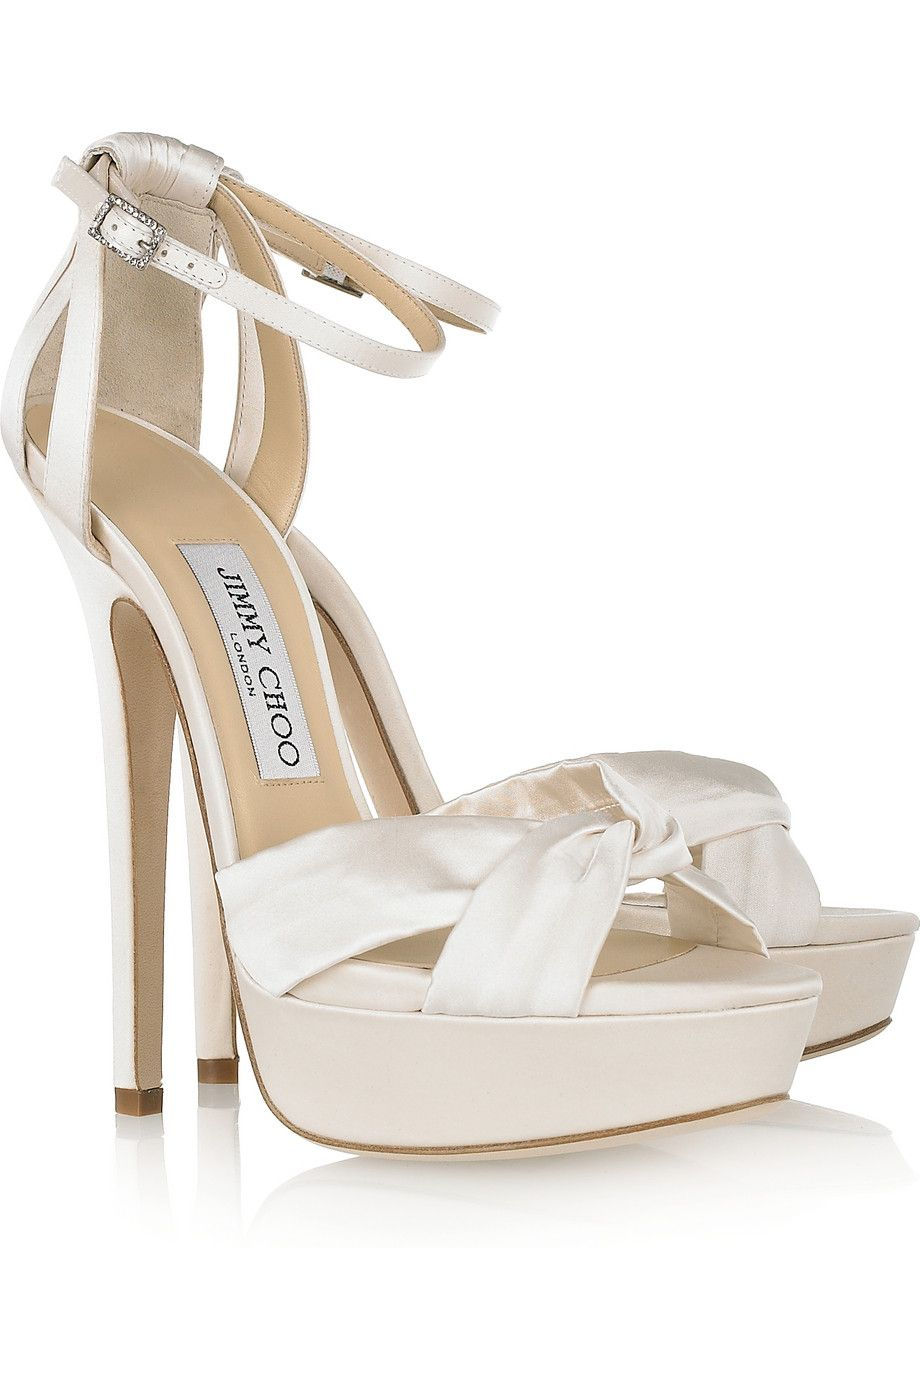 d78986f08b95 Jimmy Choo s perfect bridal sandals...yours for just  300